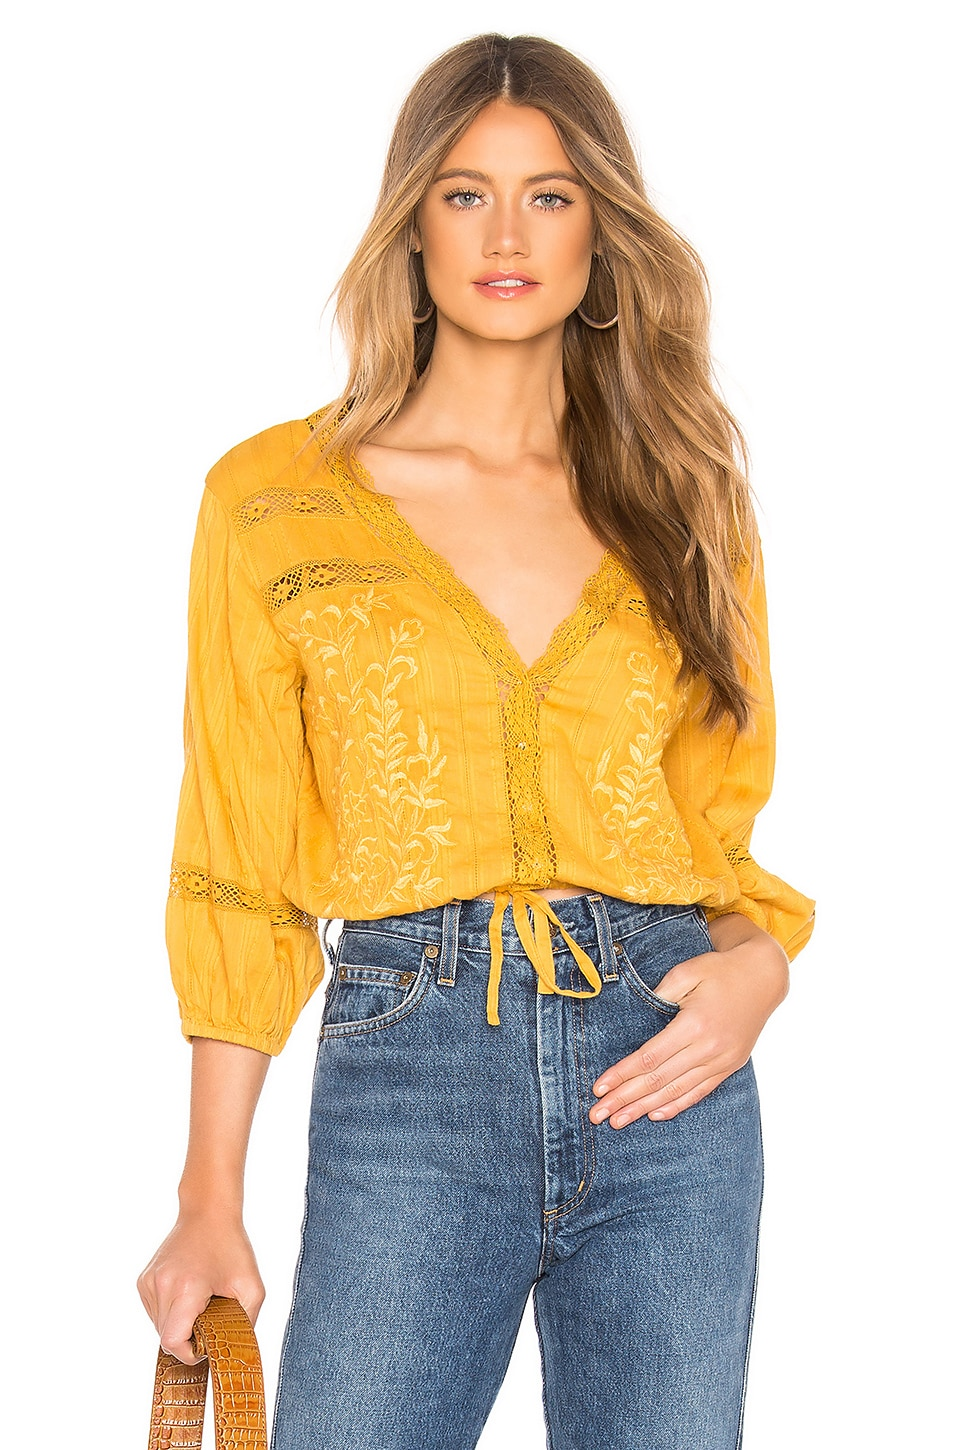 Free People Follow Your Heart Top in Gold